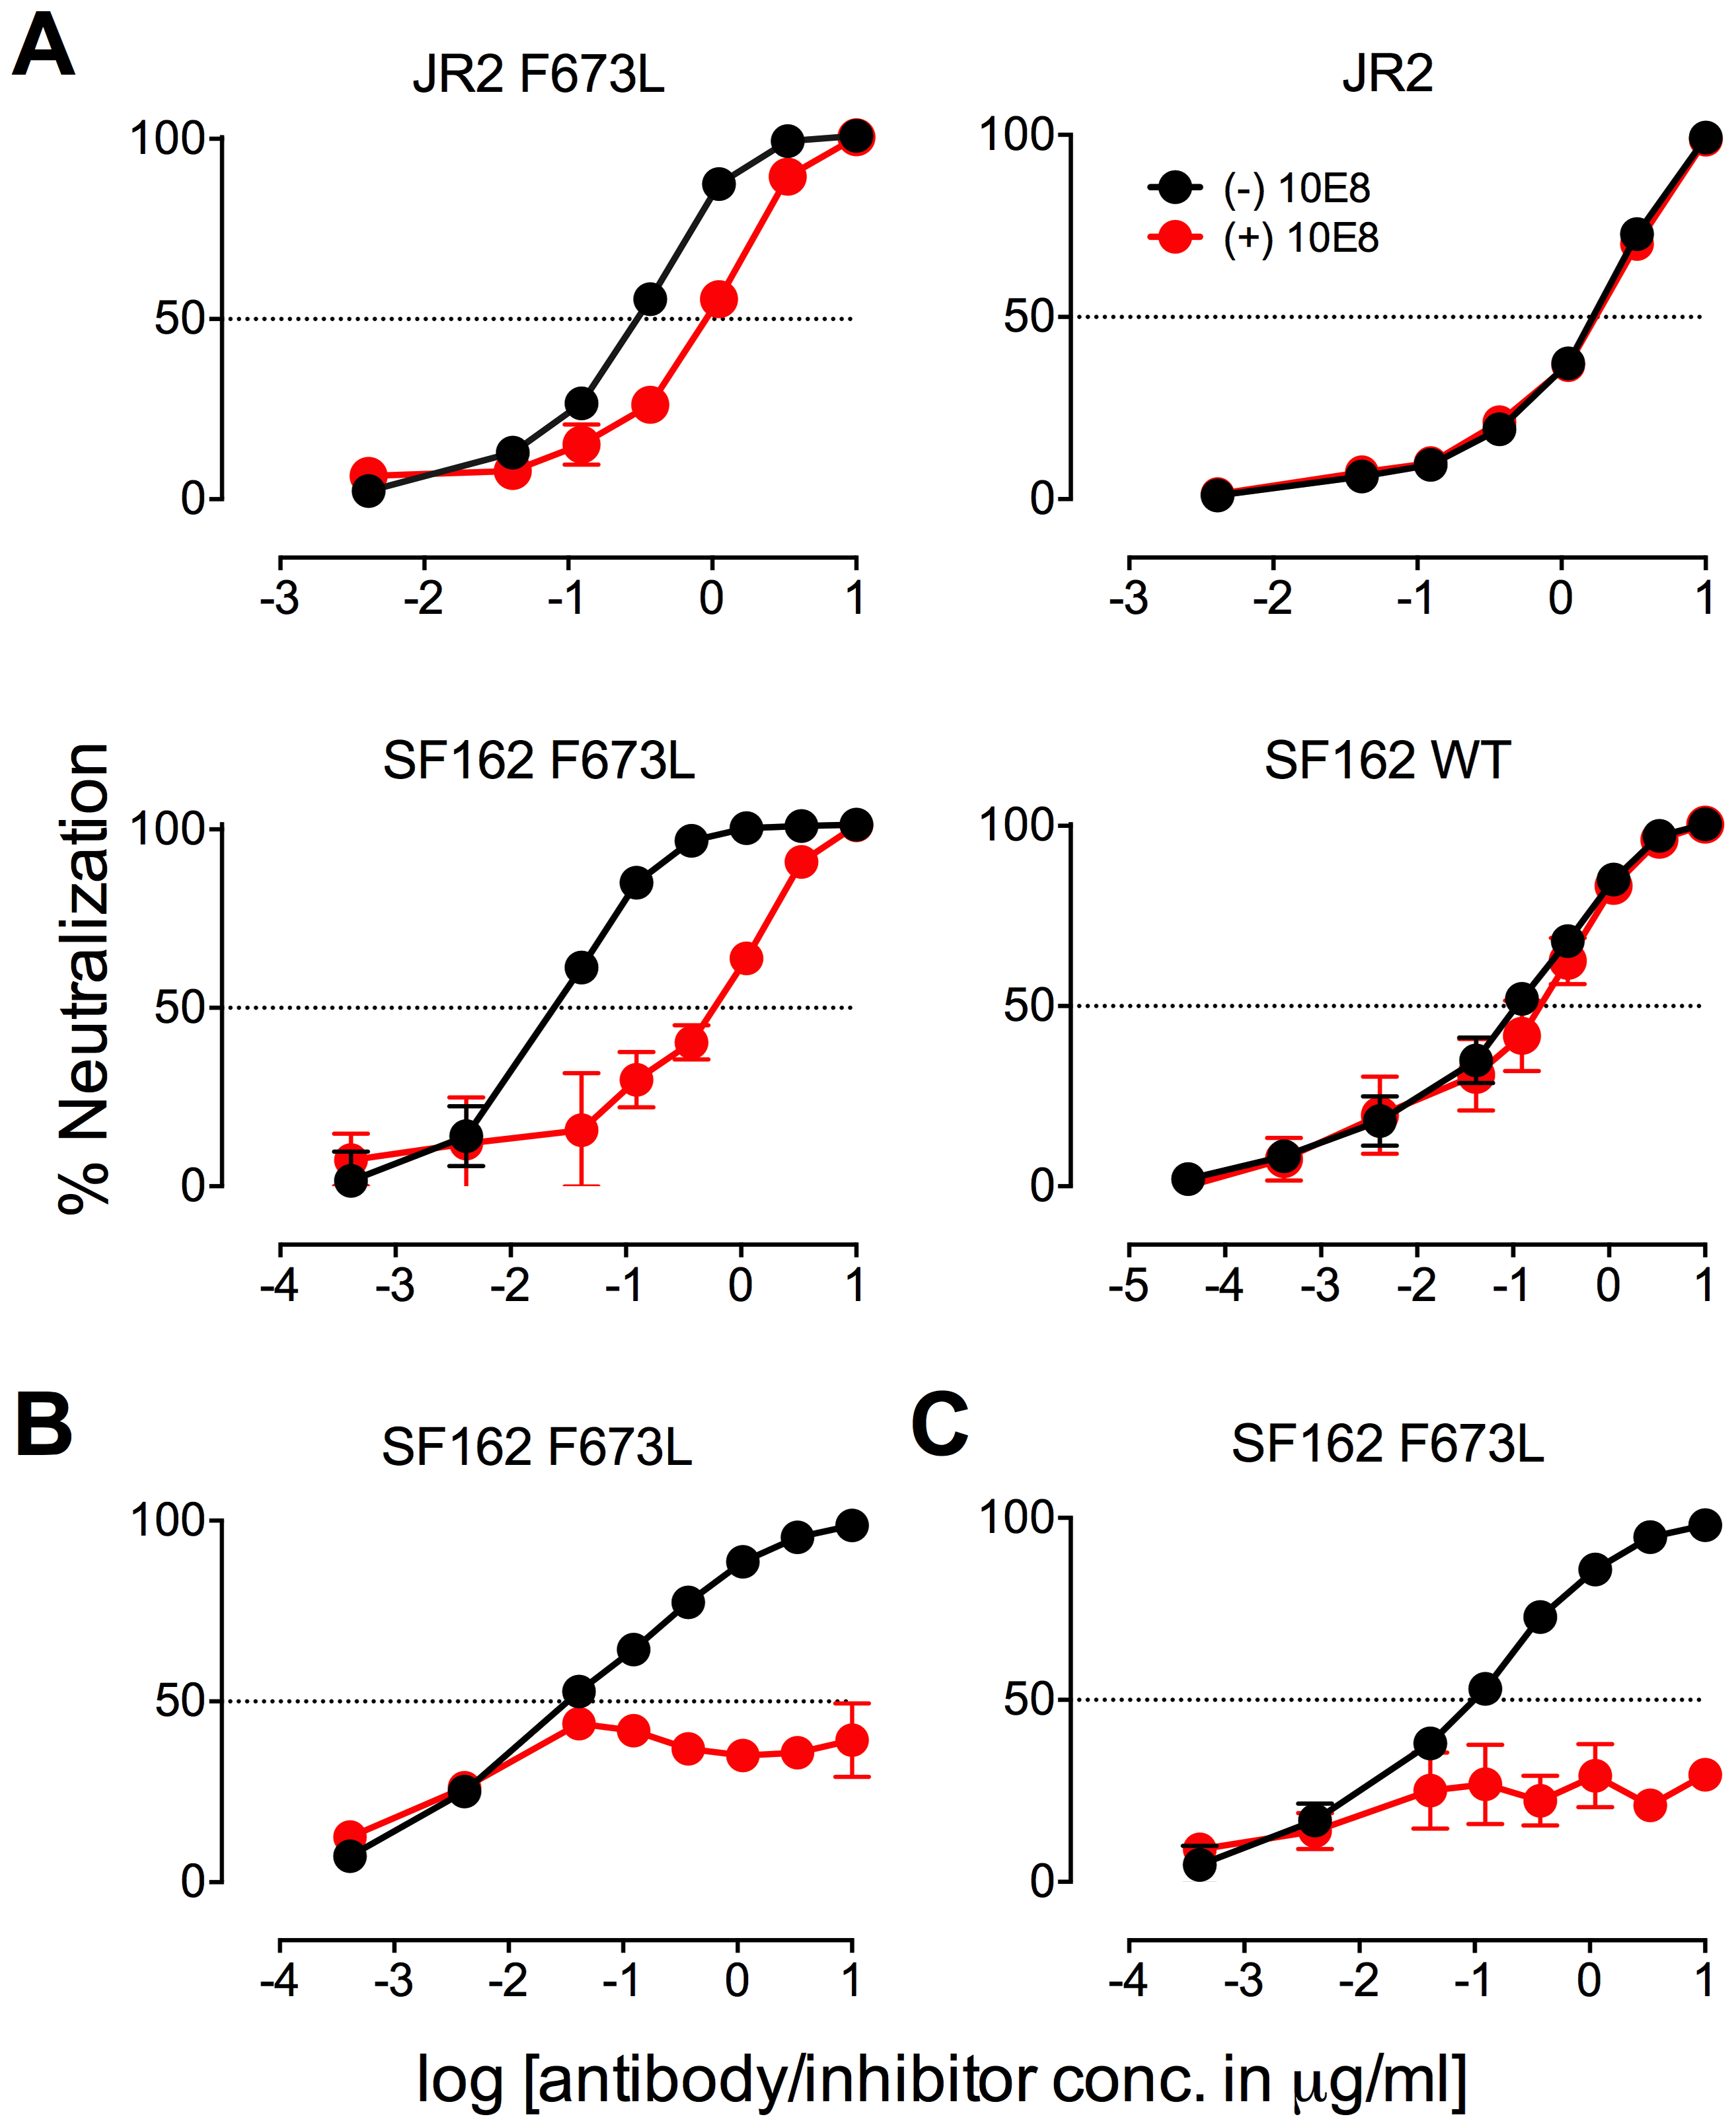 Presence of 10E8 alters sensitivity of HIV-1 to soluble CD4 as well as to antibodies against CD4 and coreceptor binding sites.